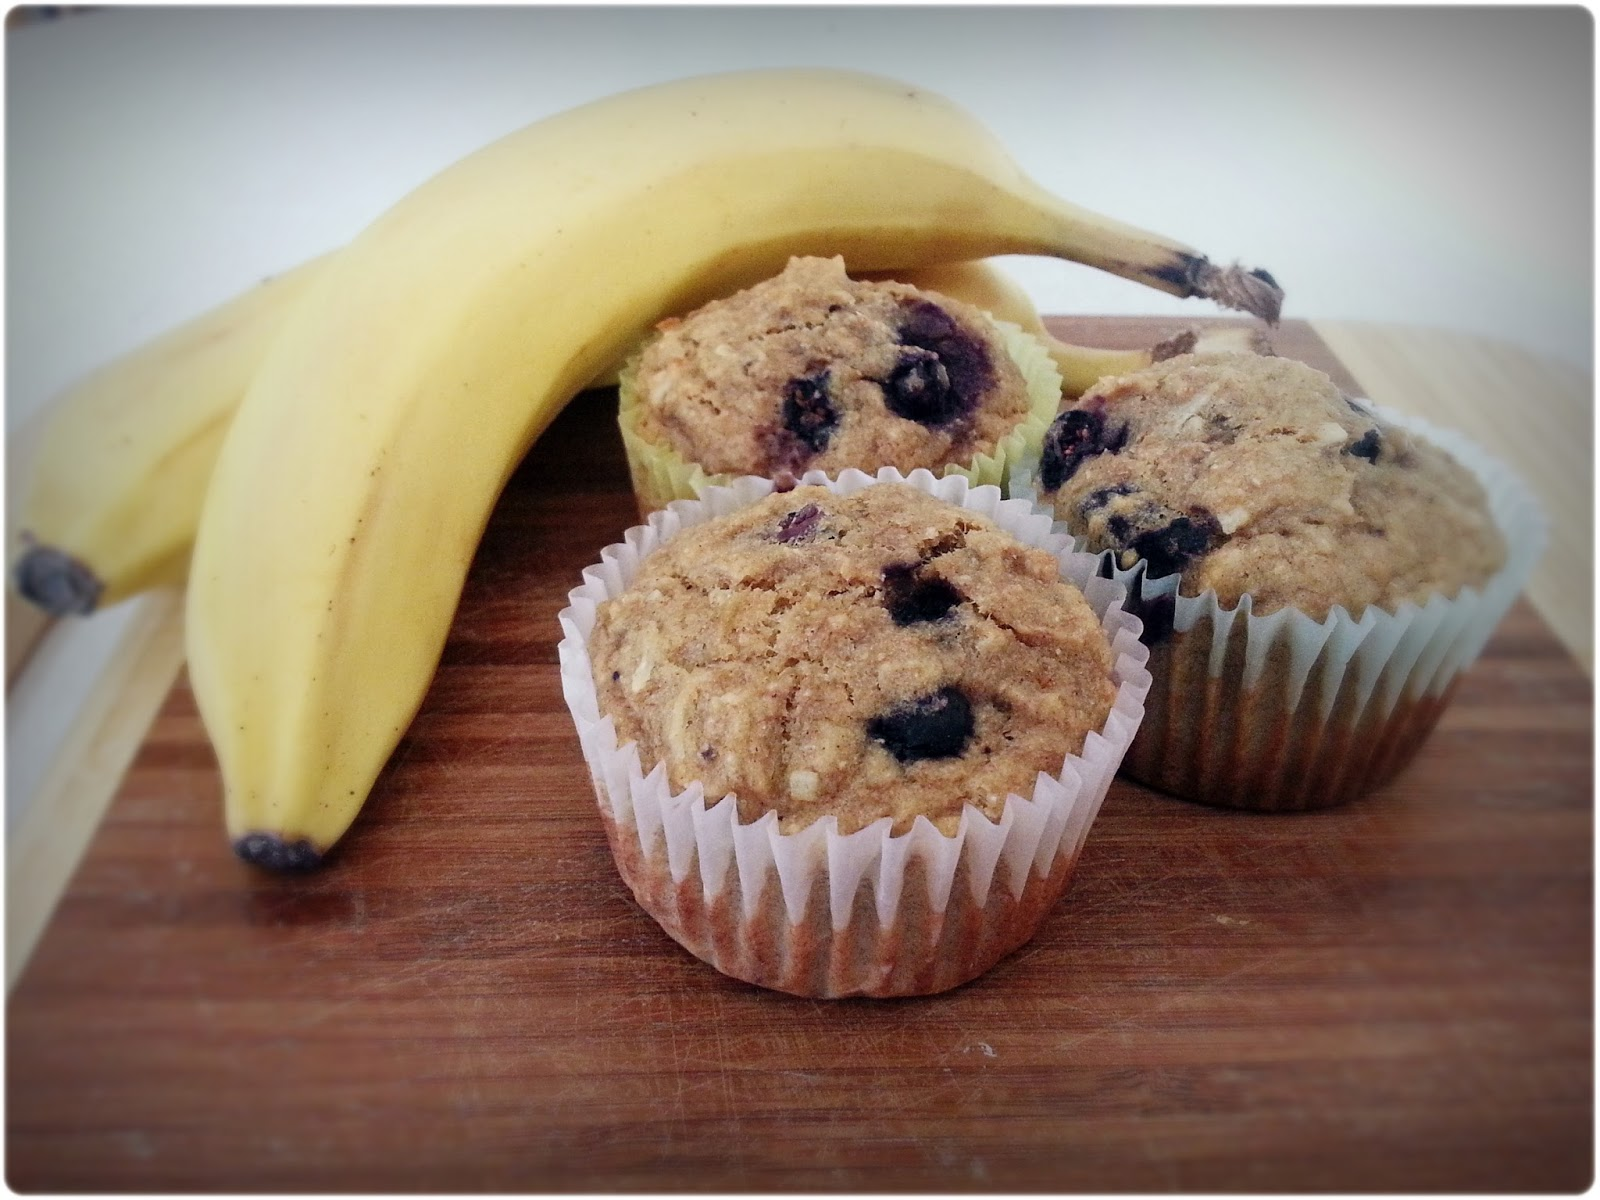 Erickson and Co.: {recipe} Blueberry Banana Muffins